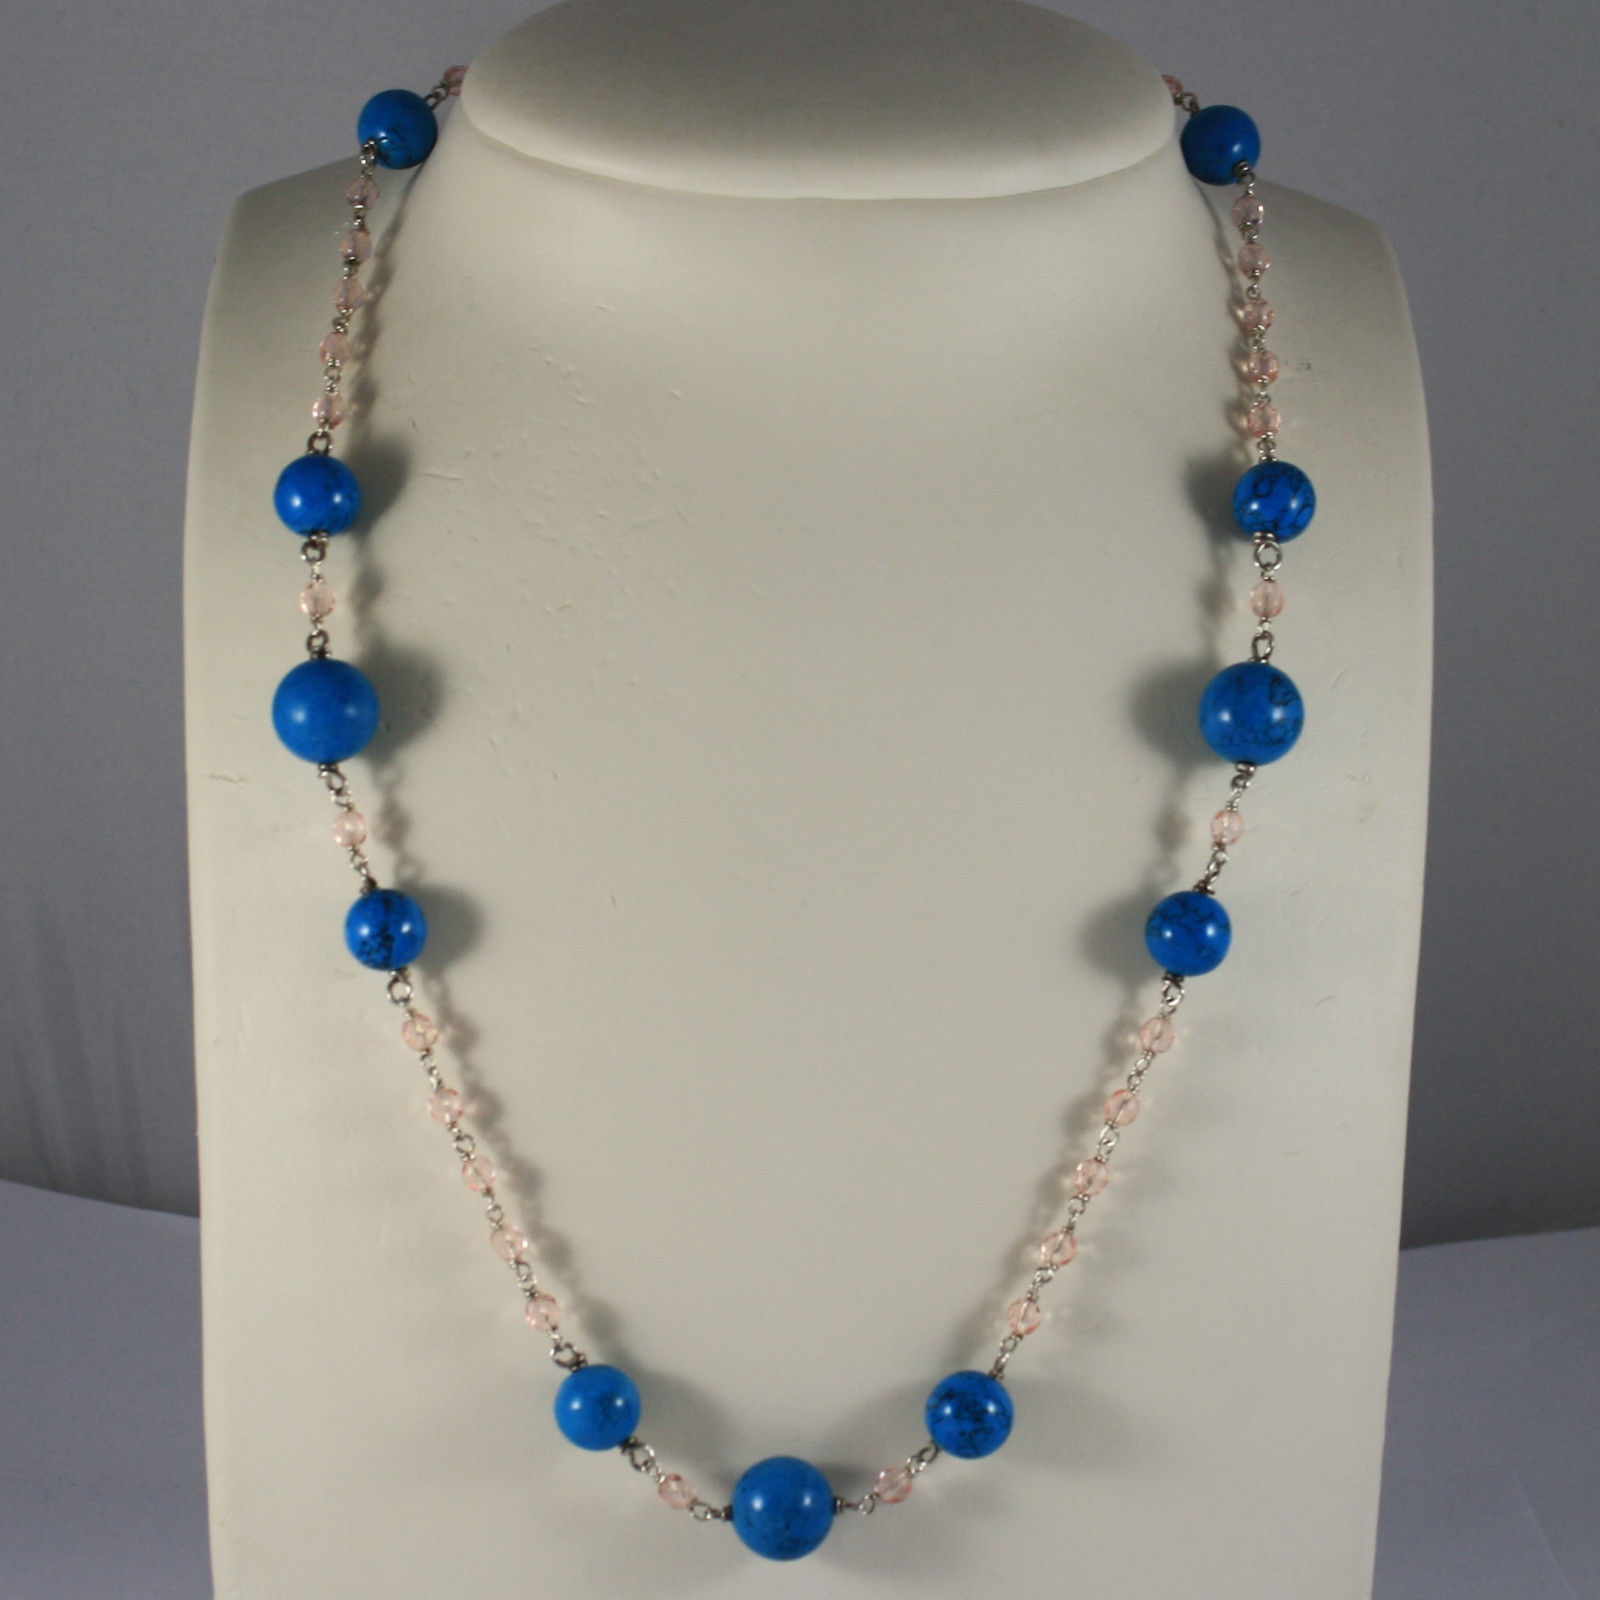 .925 RHODIUM NECKLACE WITH TURQUOISE AND PINK CRYSTALS